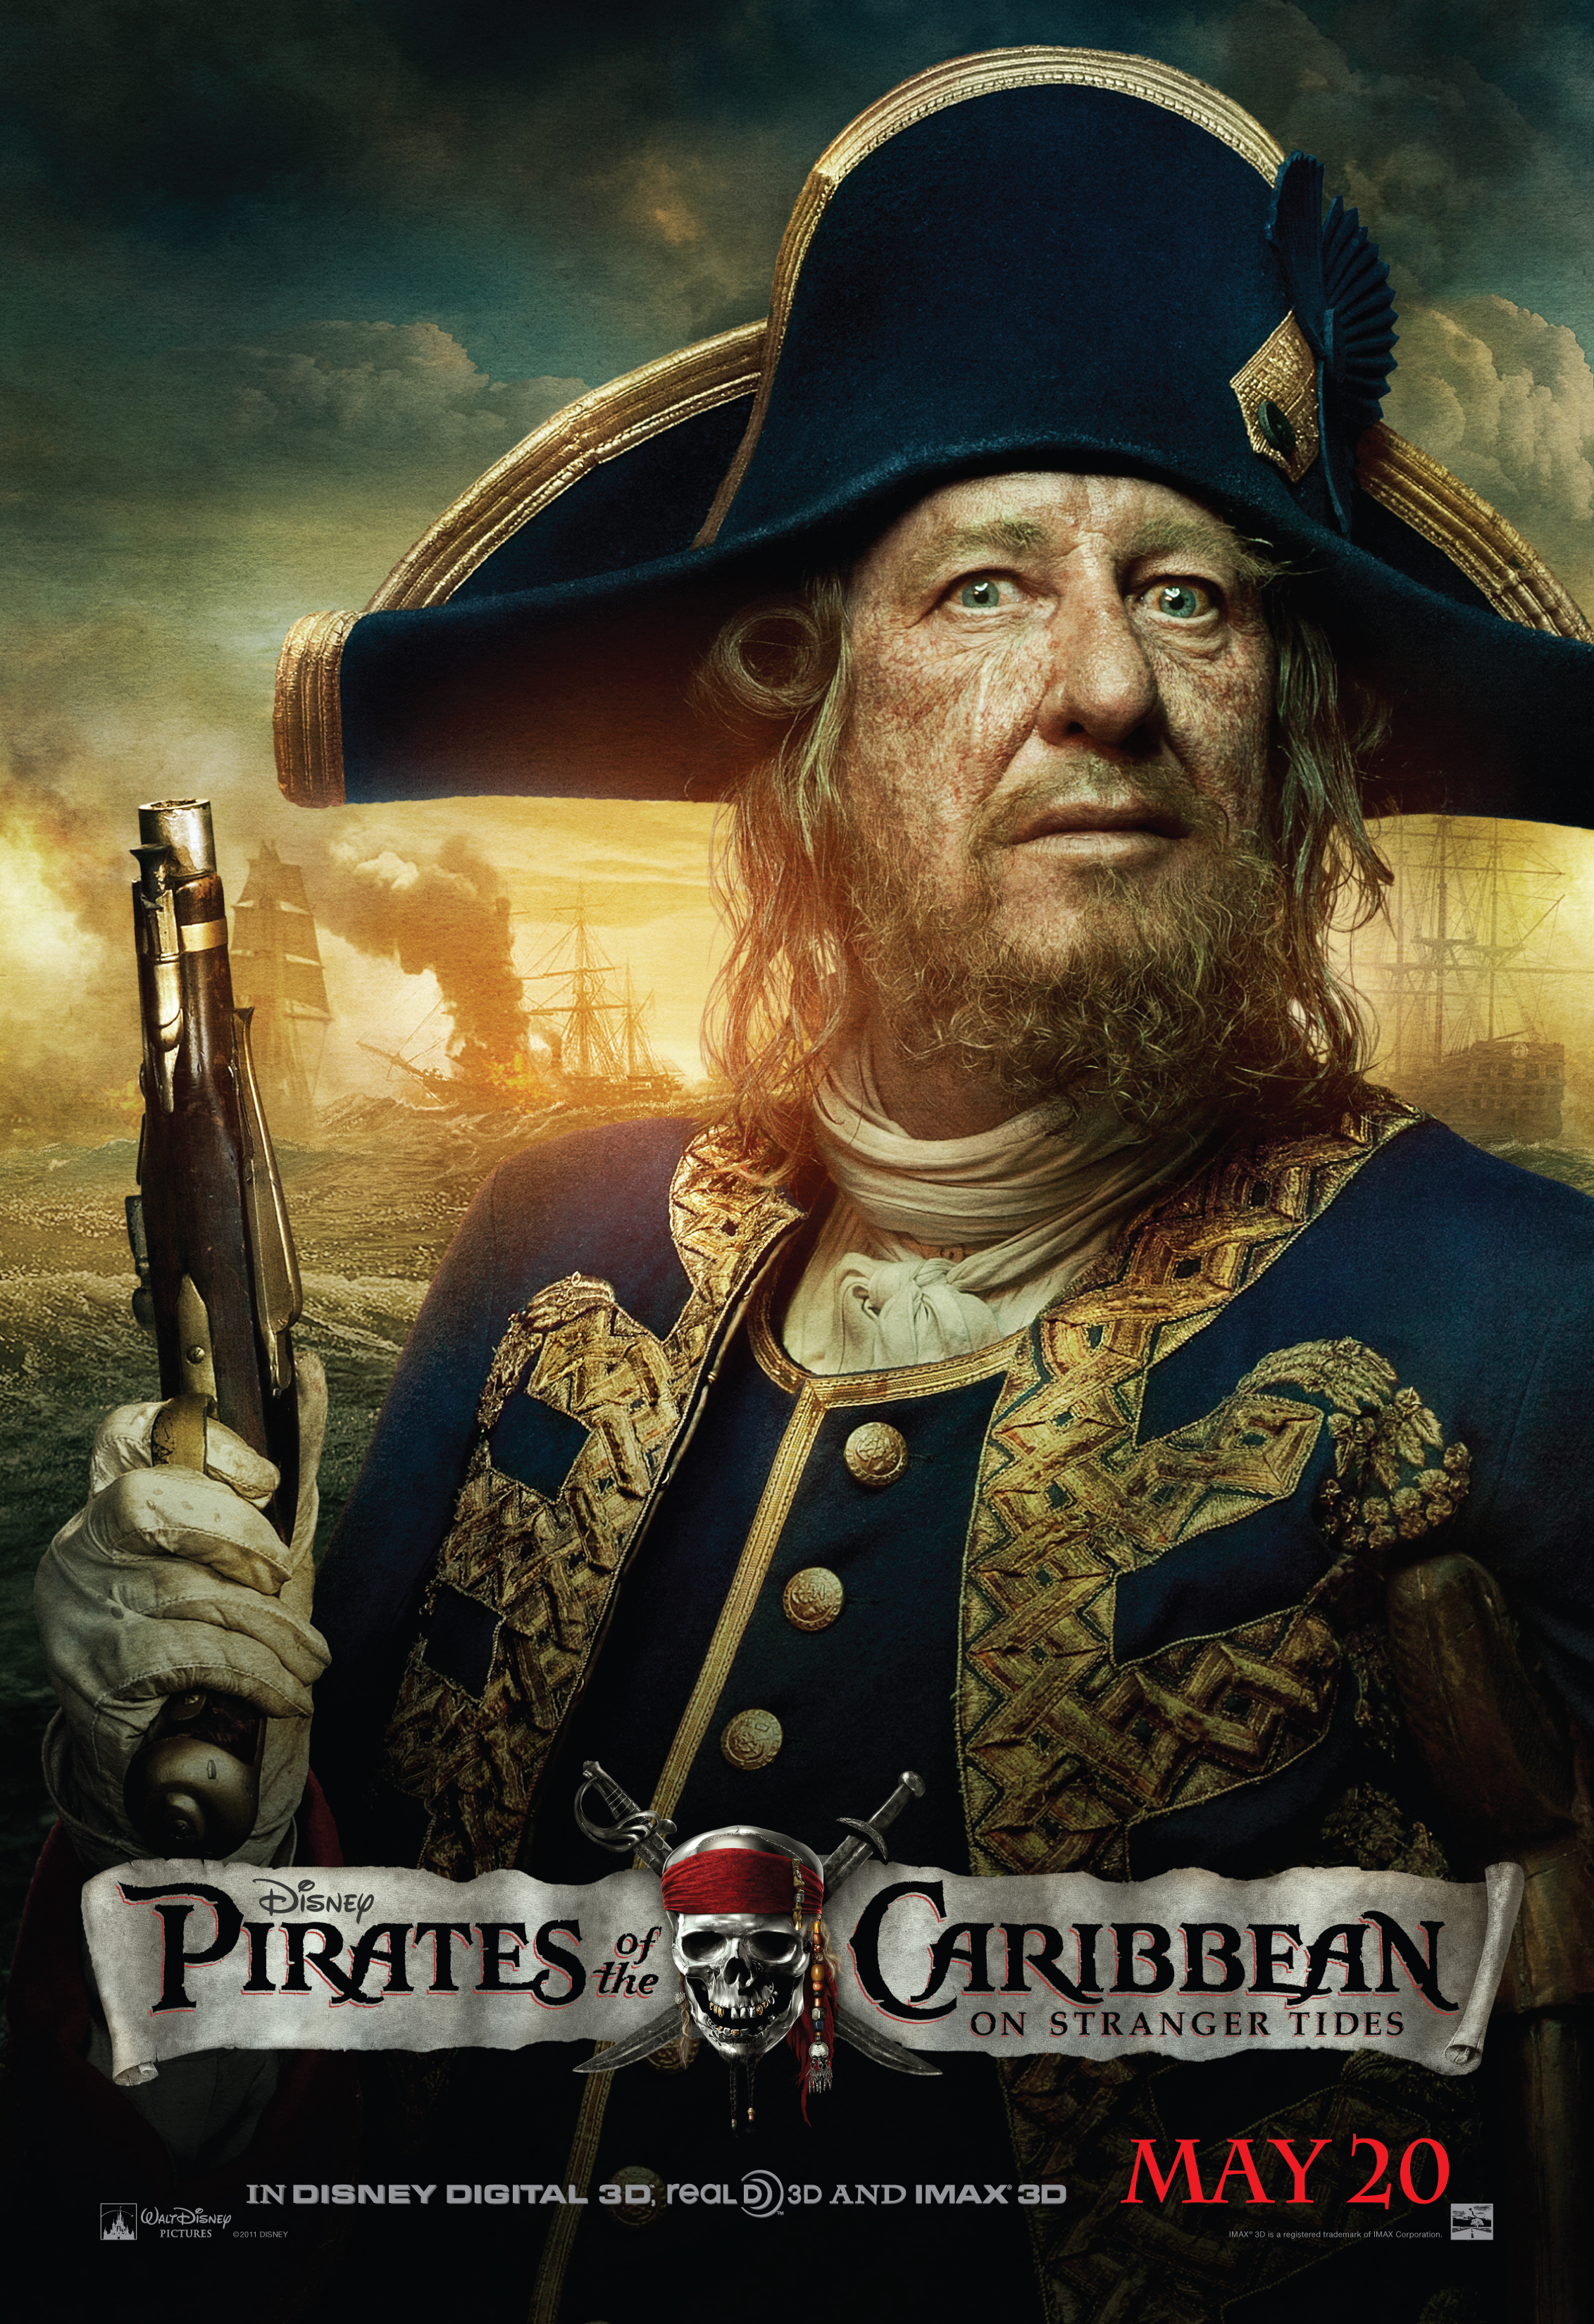 http://collider.com/wp-content/uploads/pirates-of-the-caribbean-on-stranger-tides-geoffrey-rush-poster-01.jpg